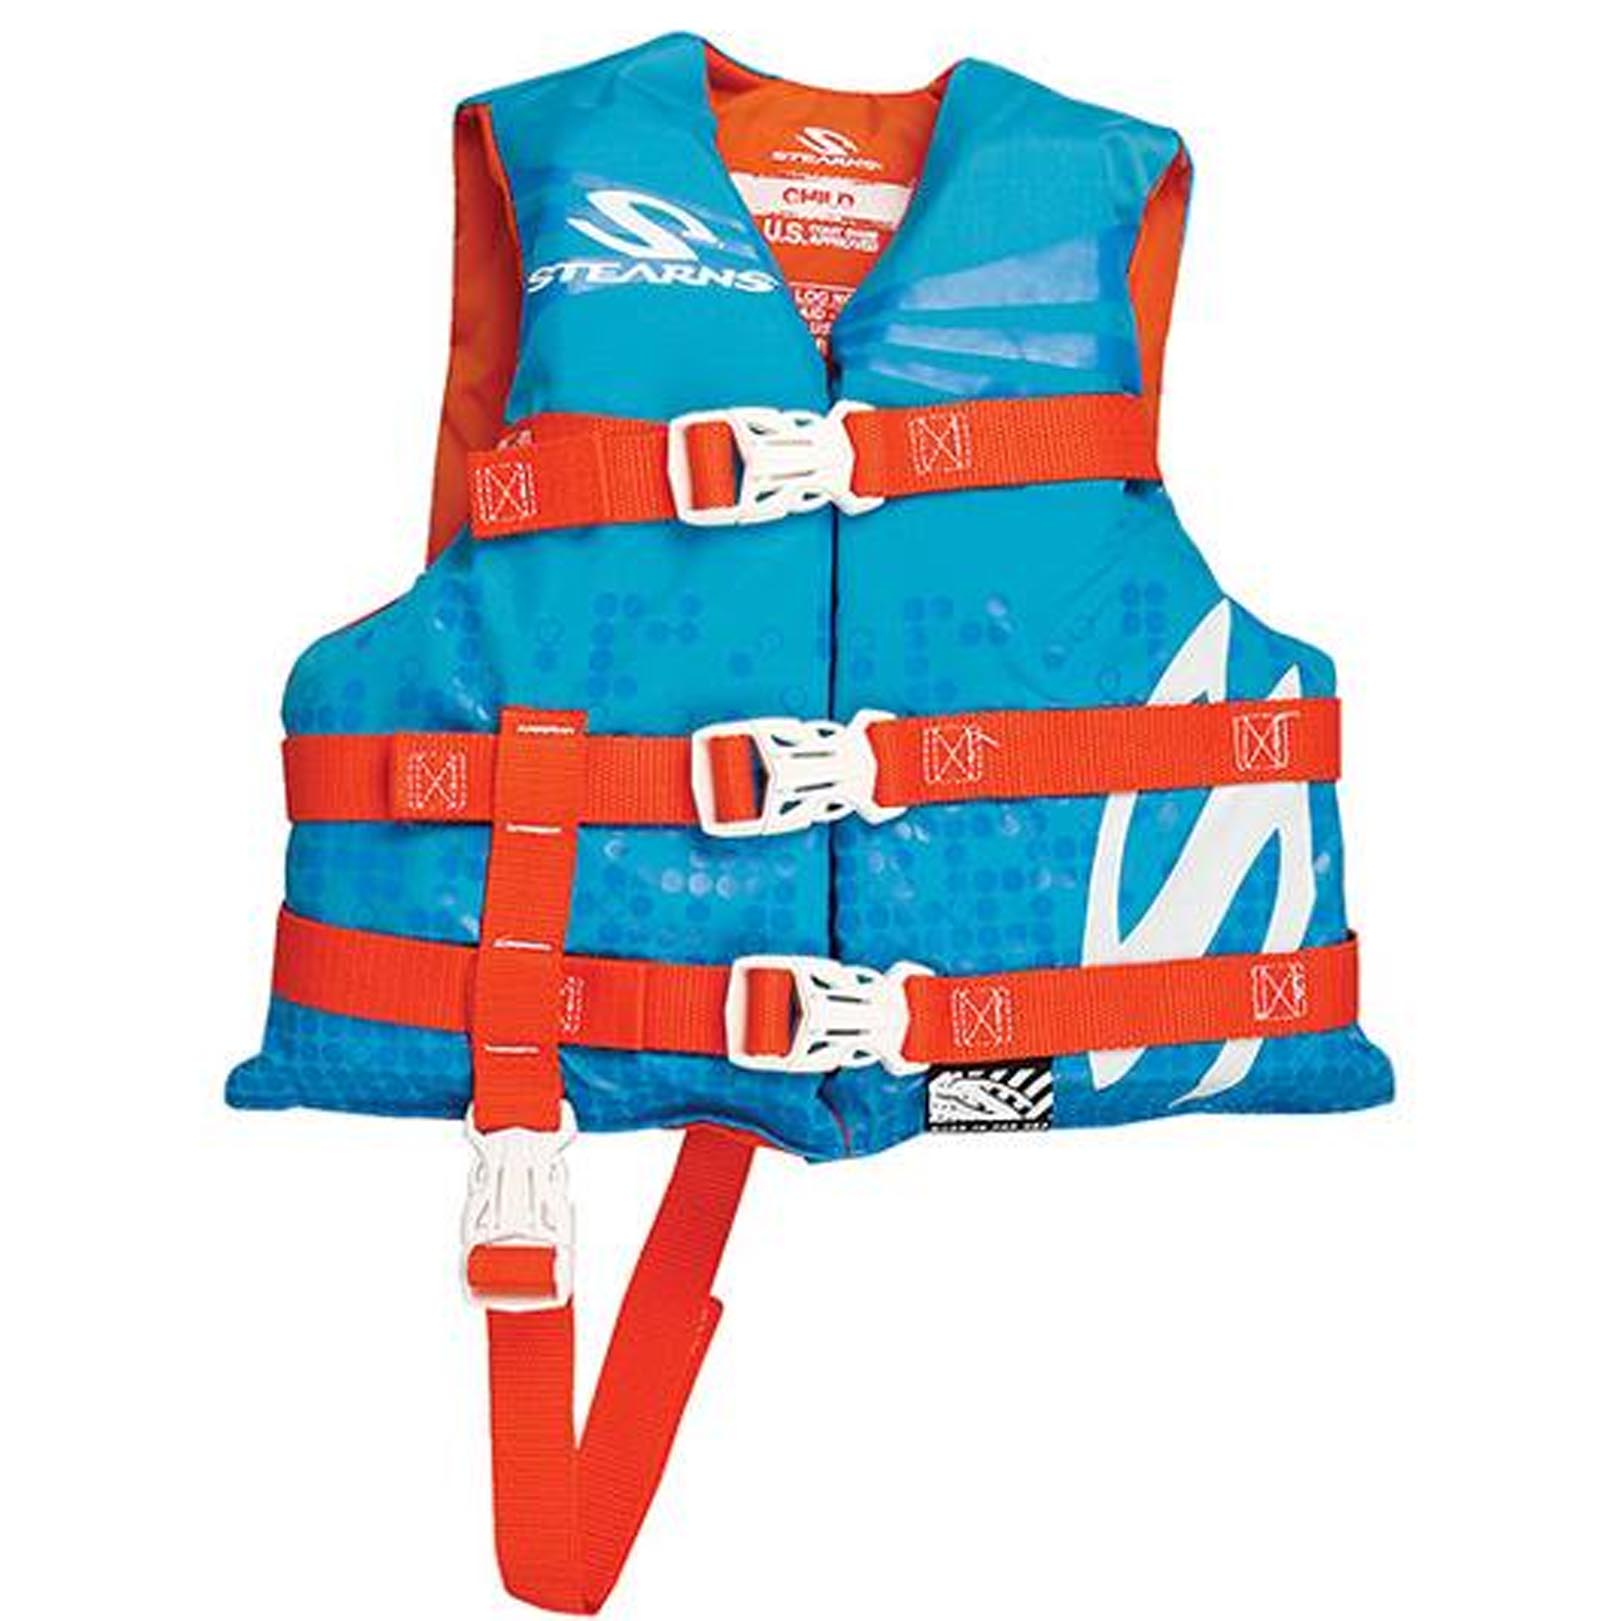 COLEMAN Stearns Classic Series Child Kid's Life Jacket Flotation Vest 30-50Lbs by